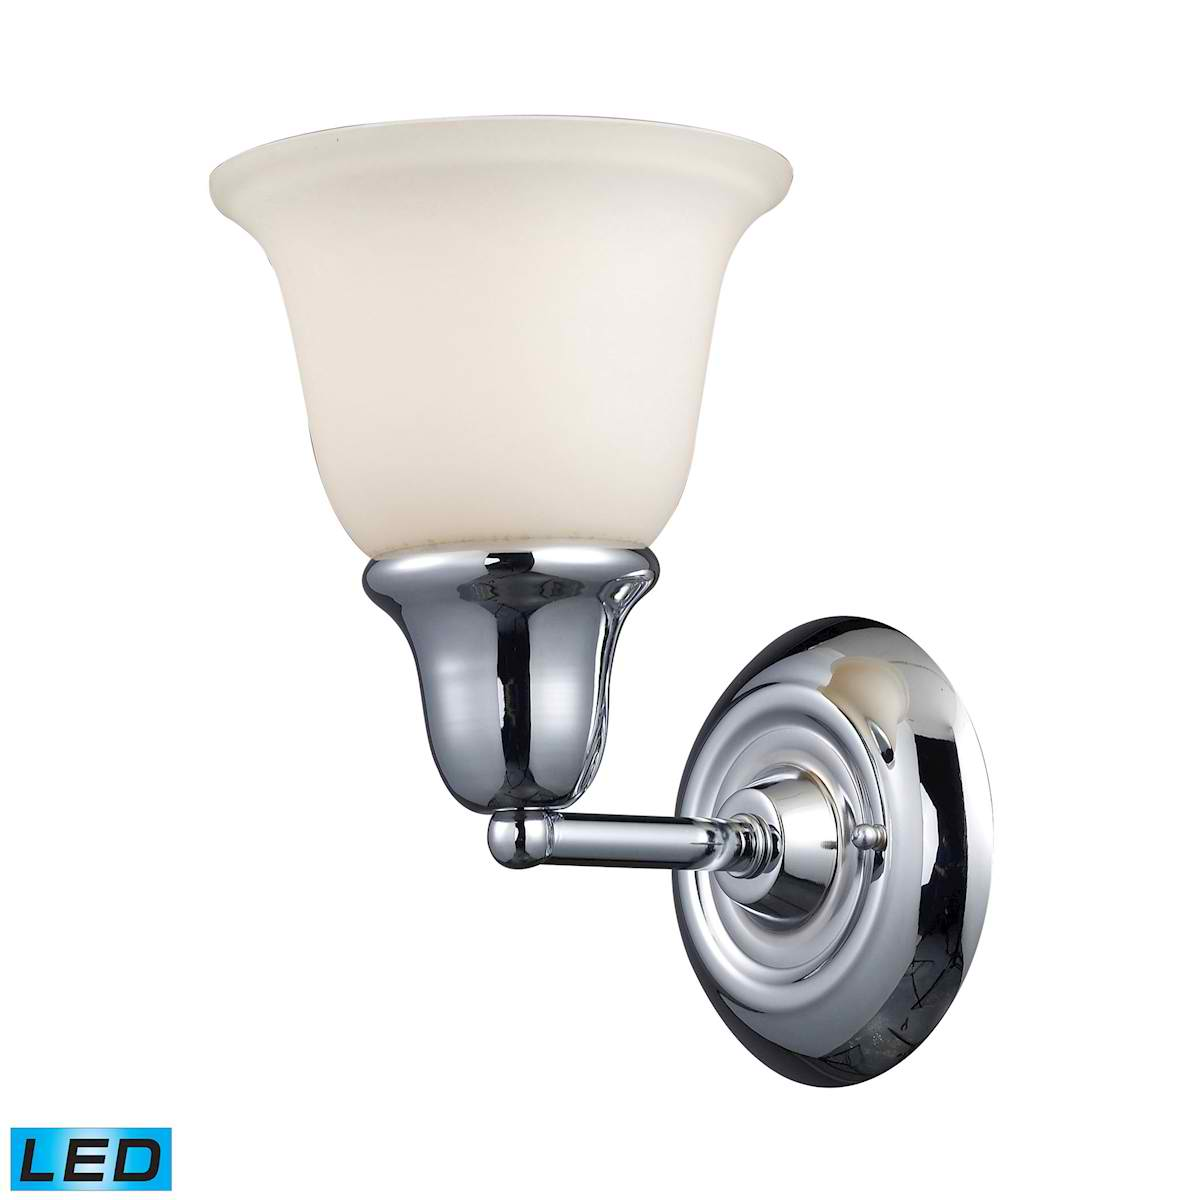 Berwick 1-Light Vanity in Polished Chrome - LED Offering Up To 800 Lumens (60 Watt Equivalent) With